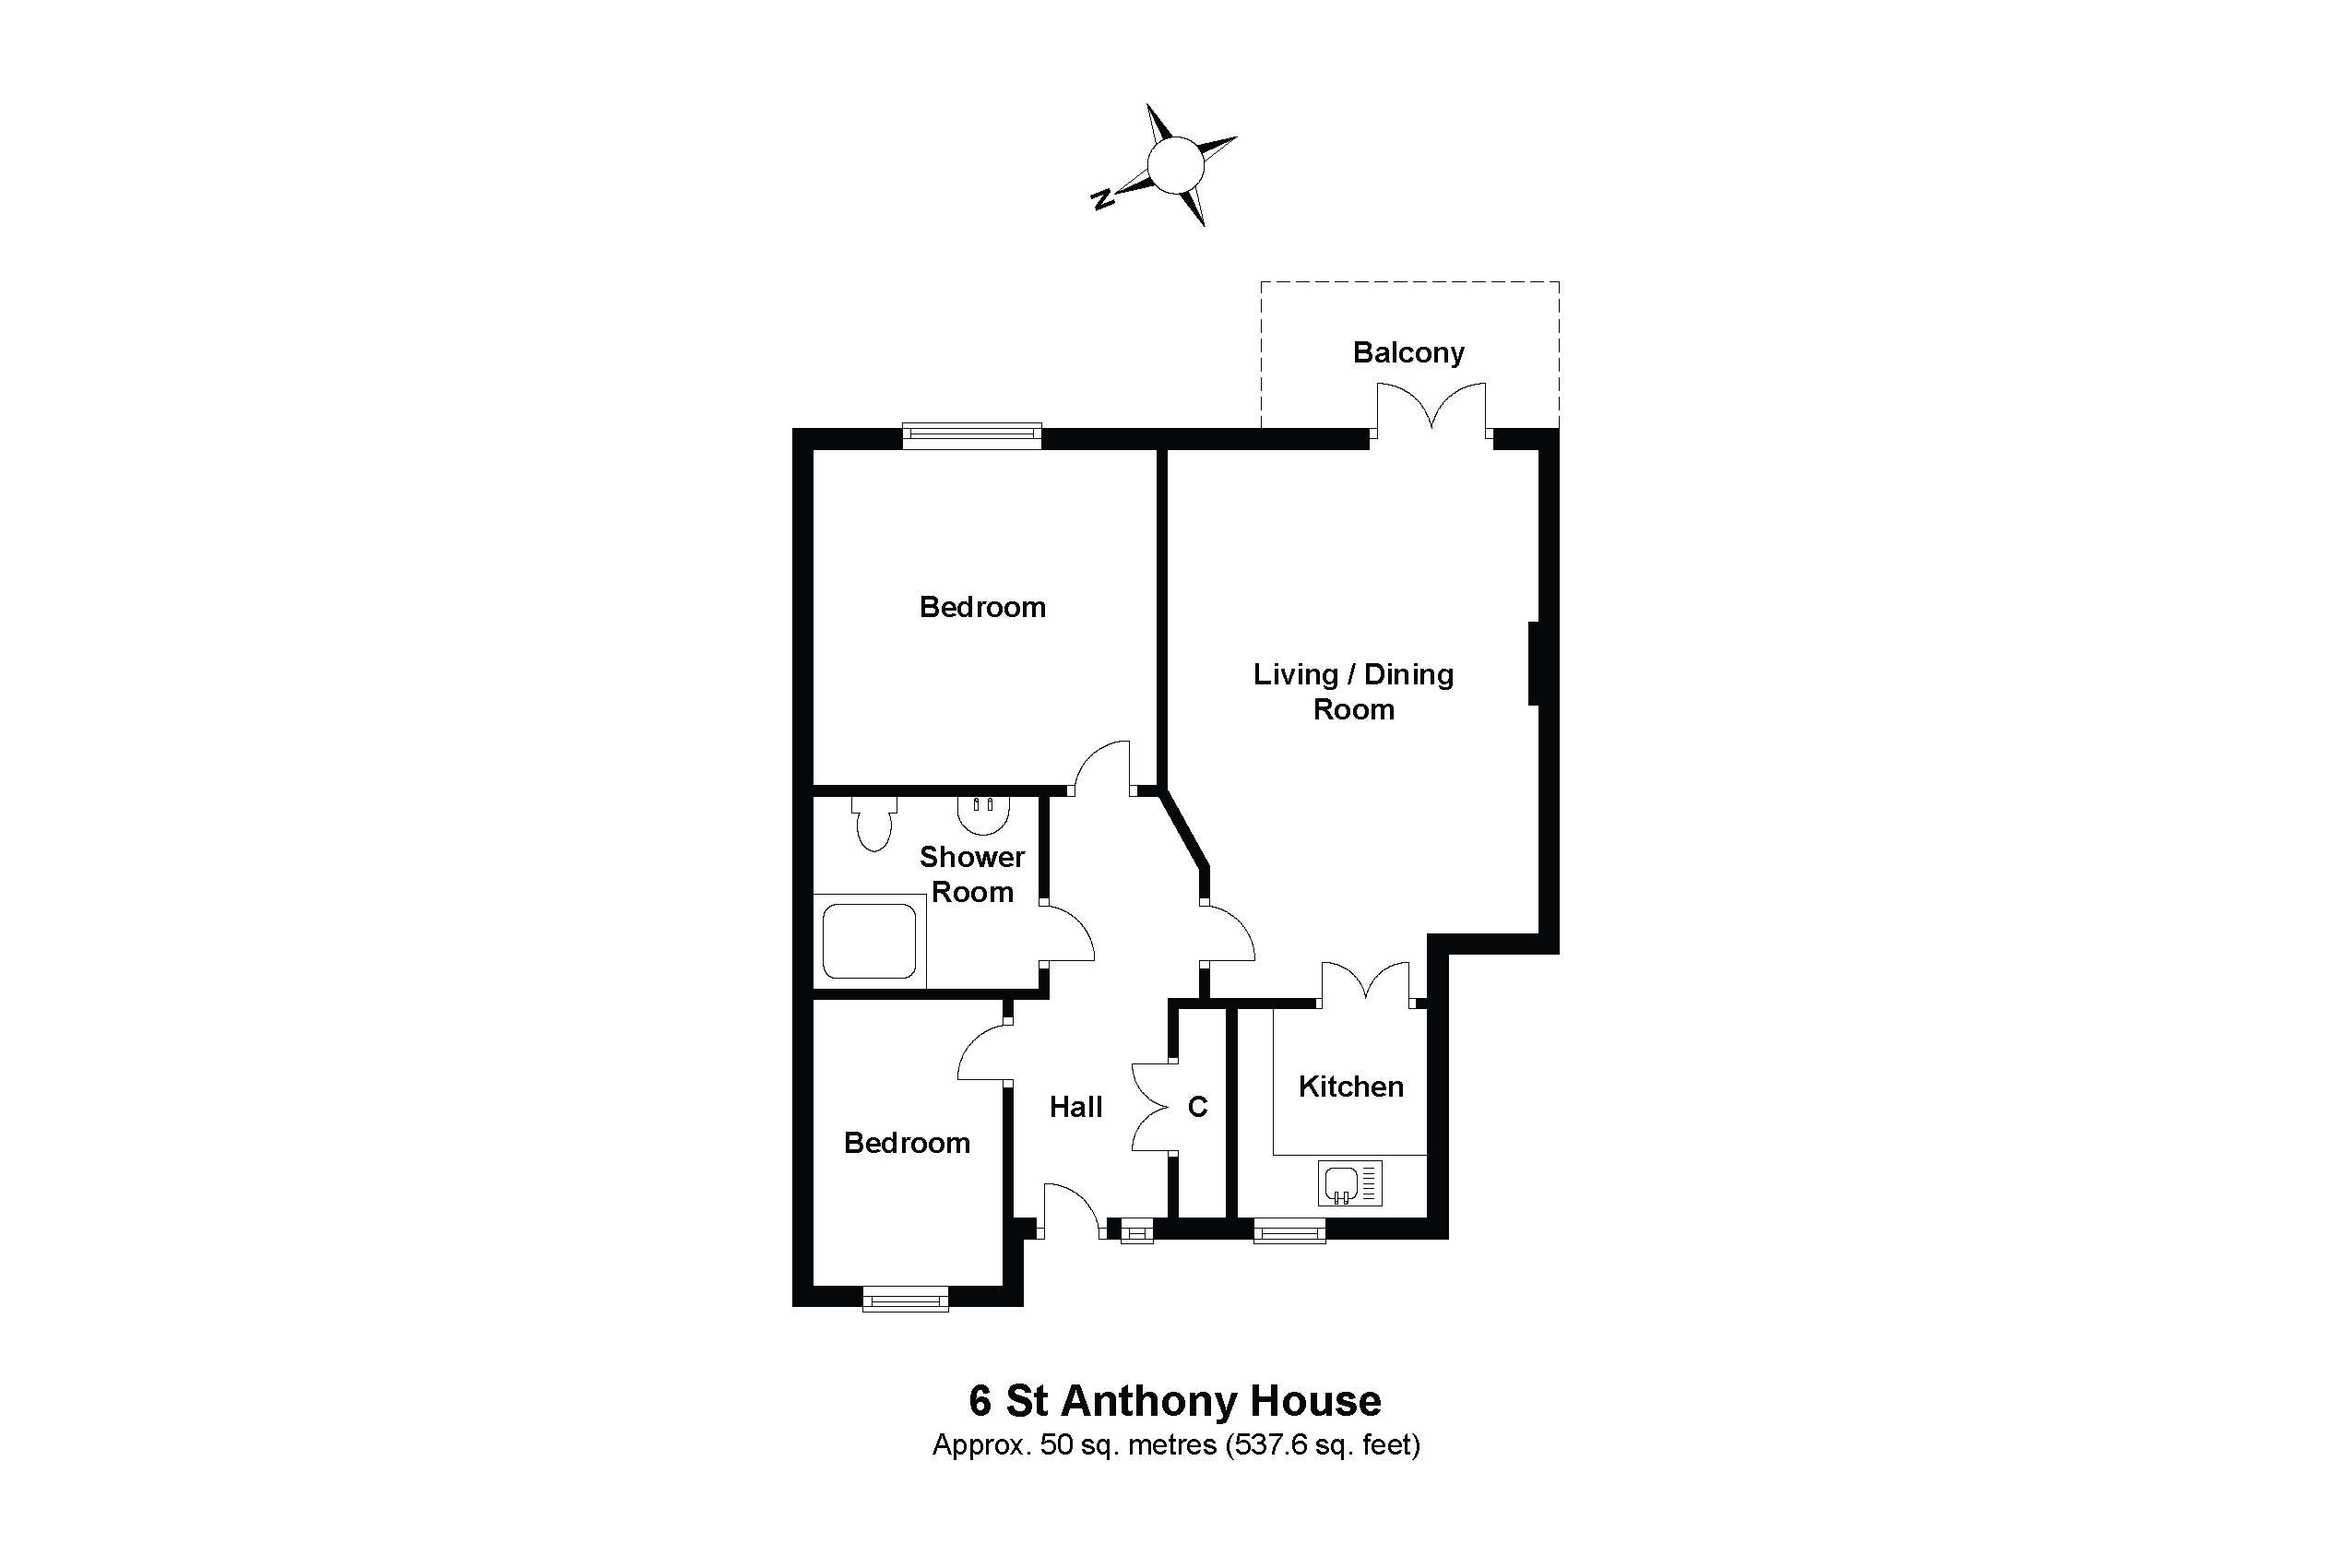 6 St Anthony House Floorplan